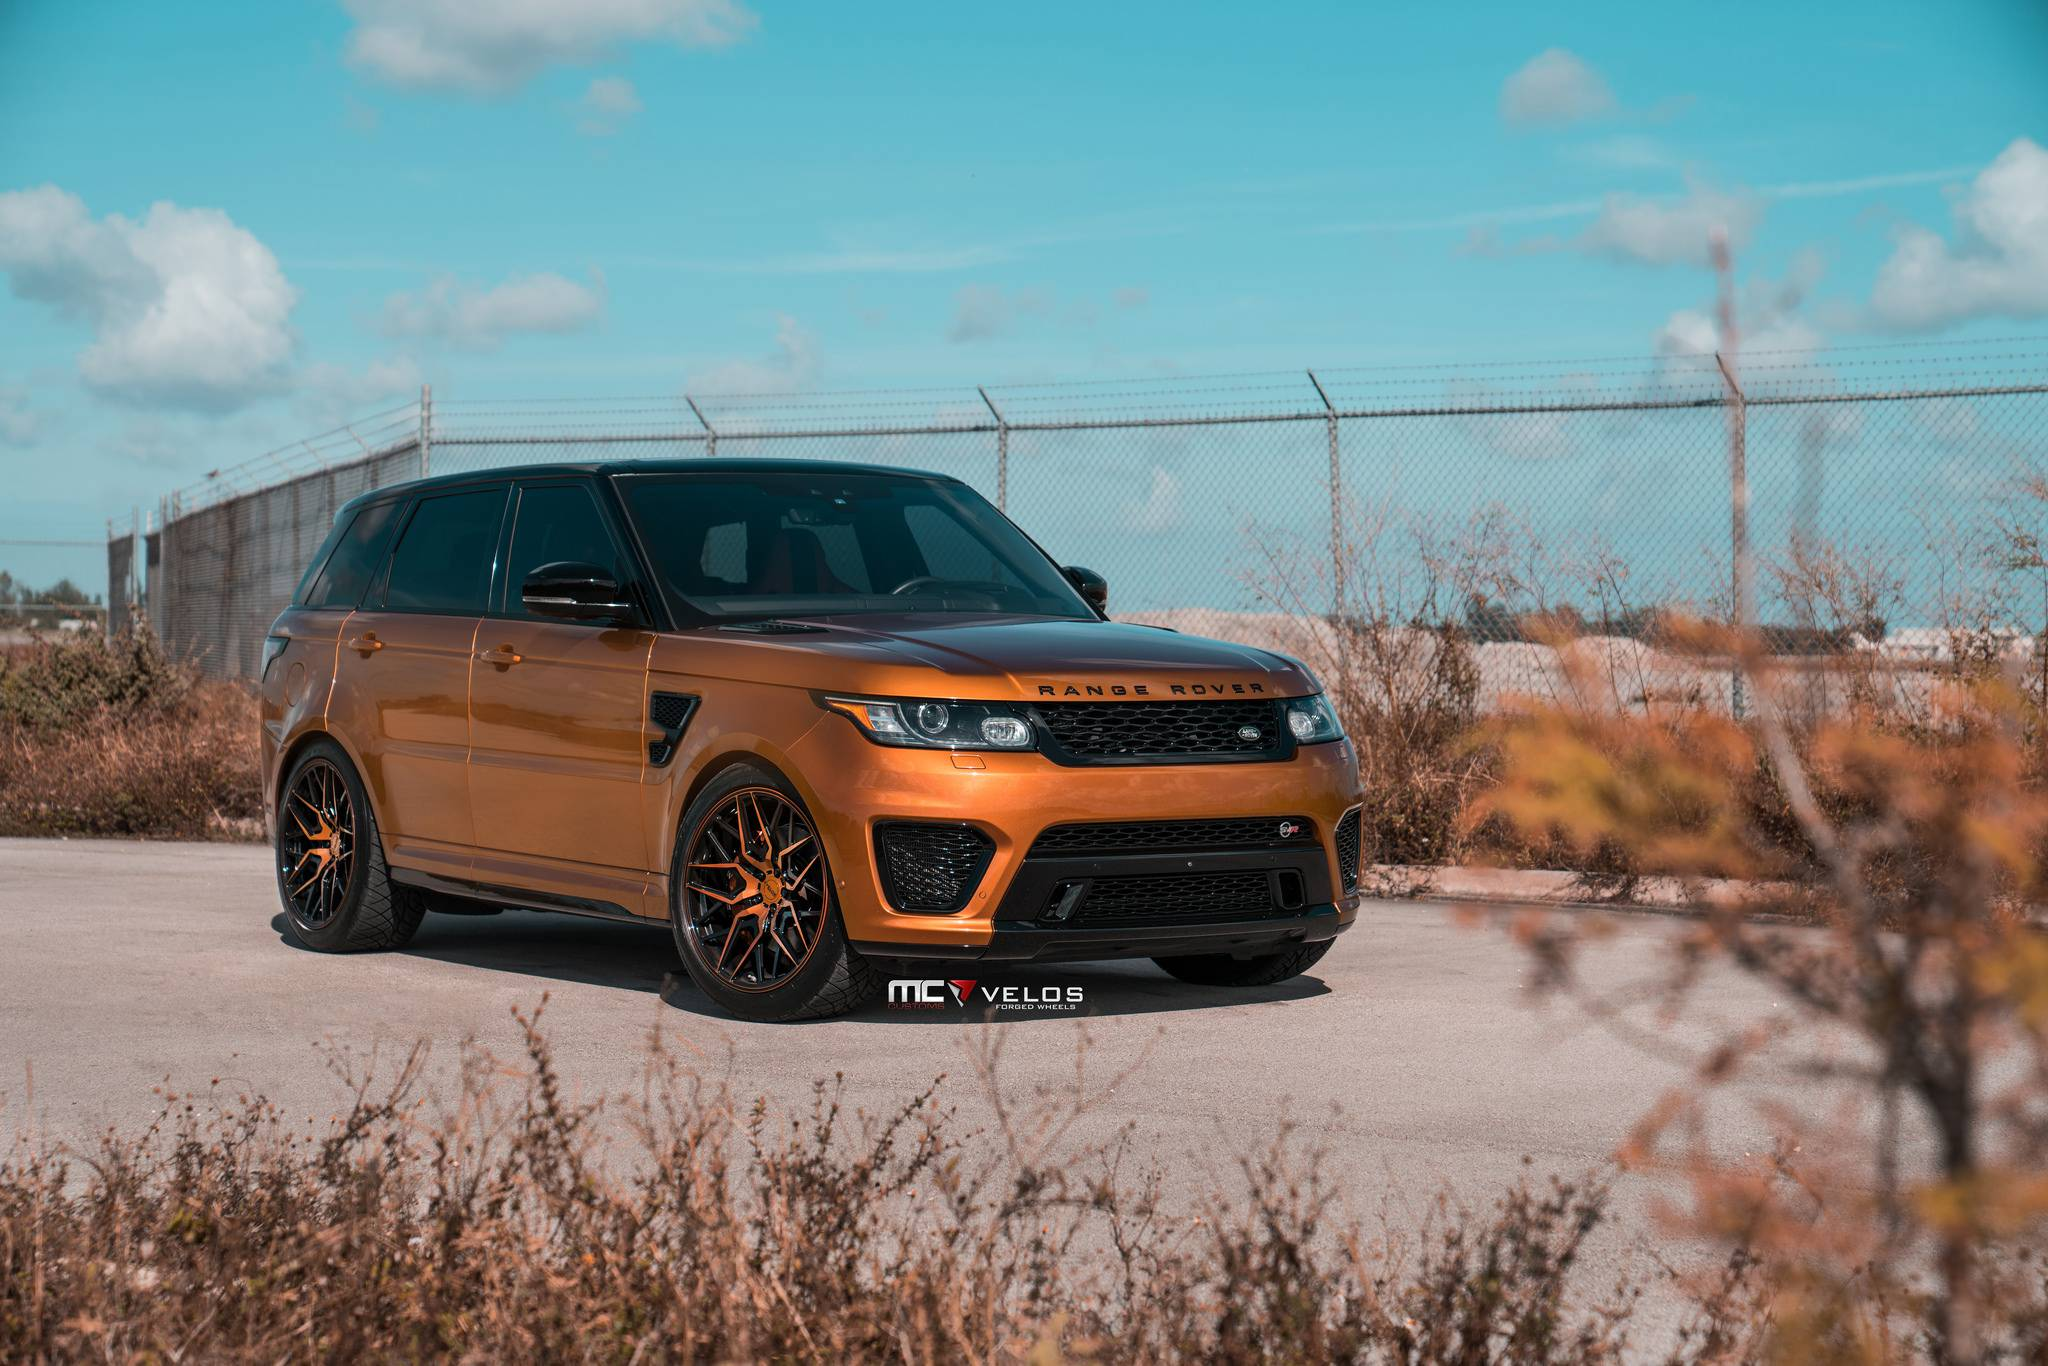 Range Rover Sport in High Quality